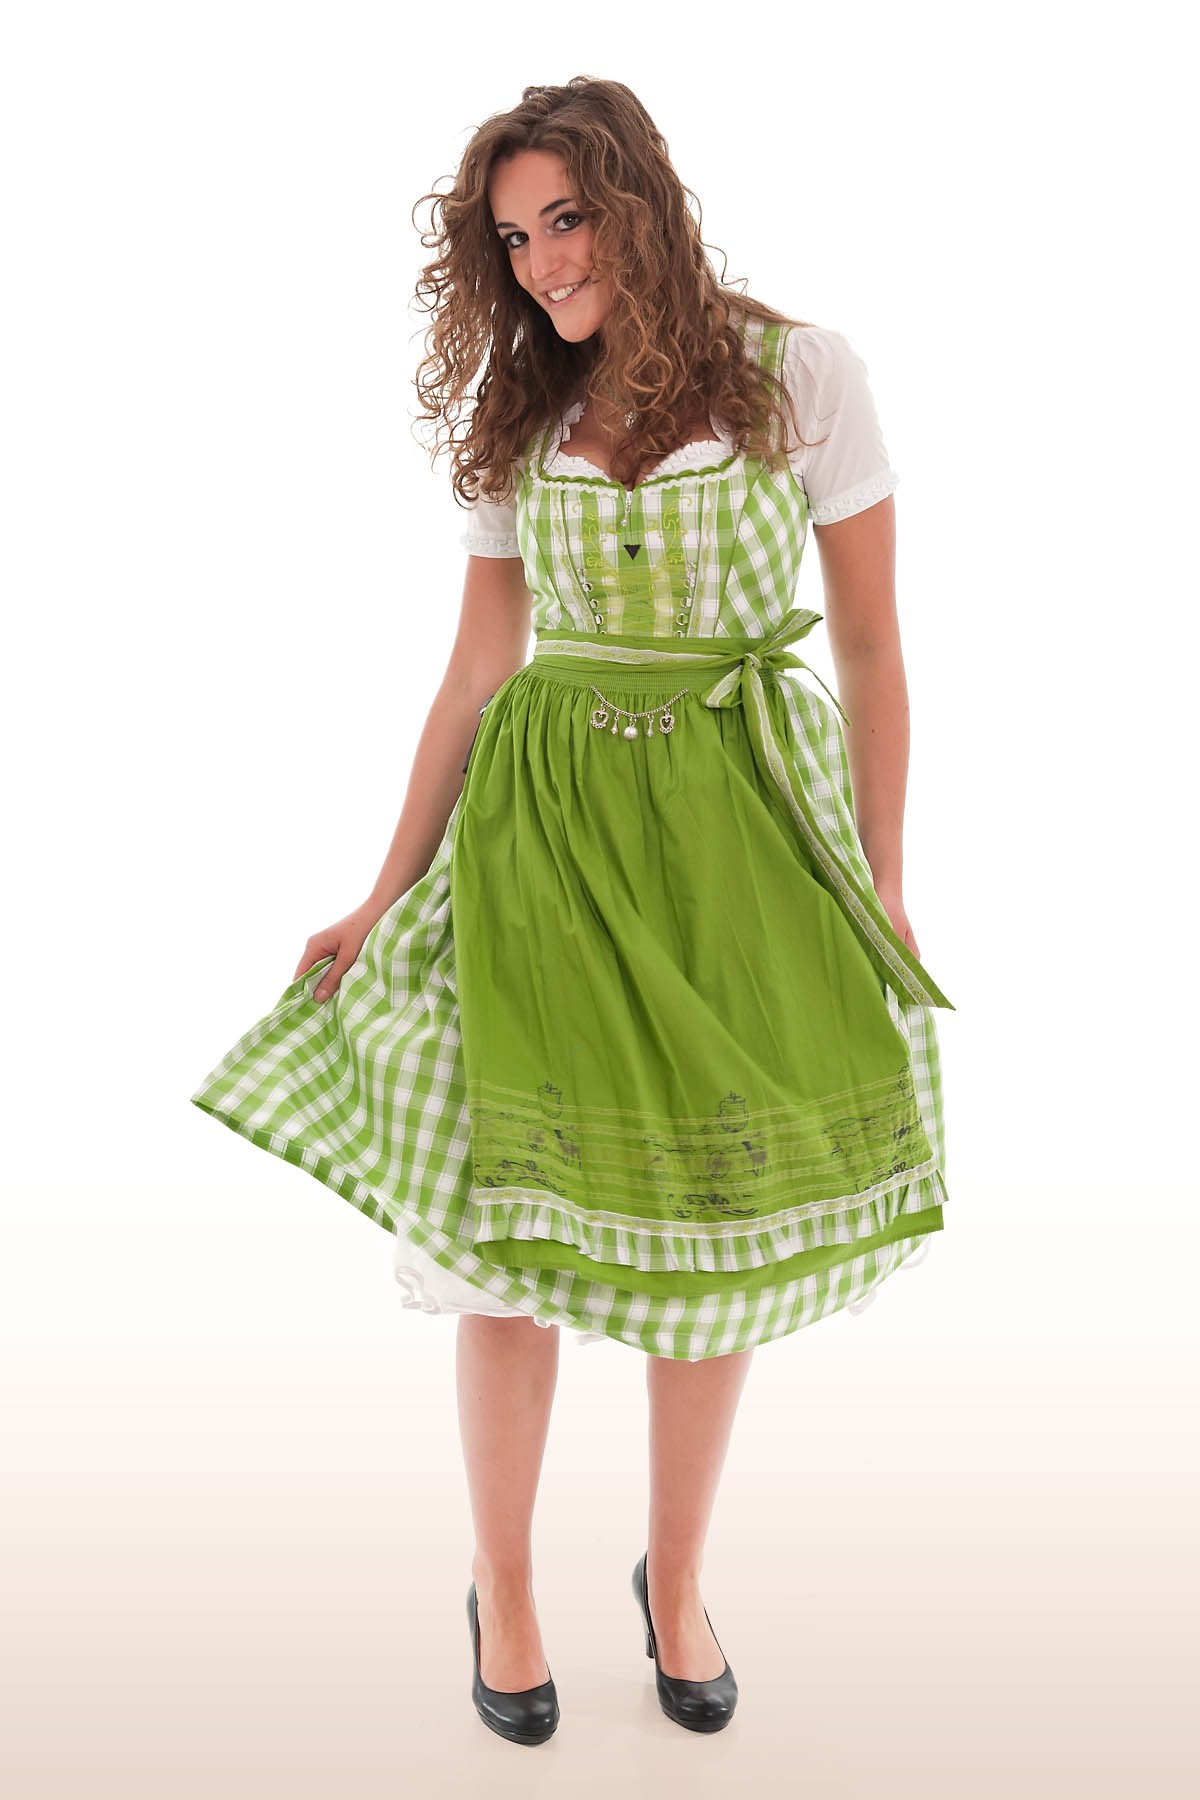 spieth wensky neu eingetroffen mini dirndl maxi. Black Bedroom Furniture Sets. Home Design Ideas